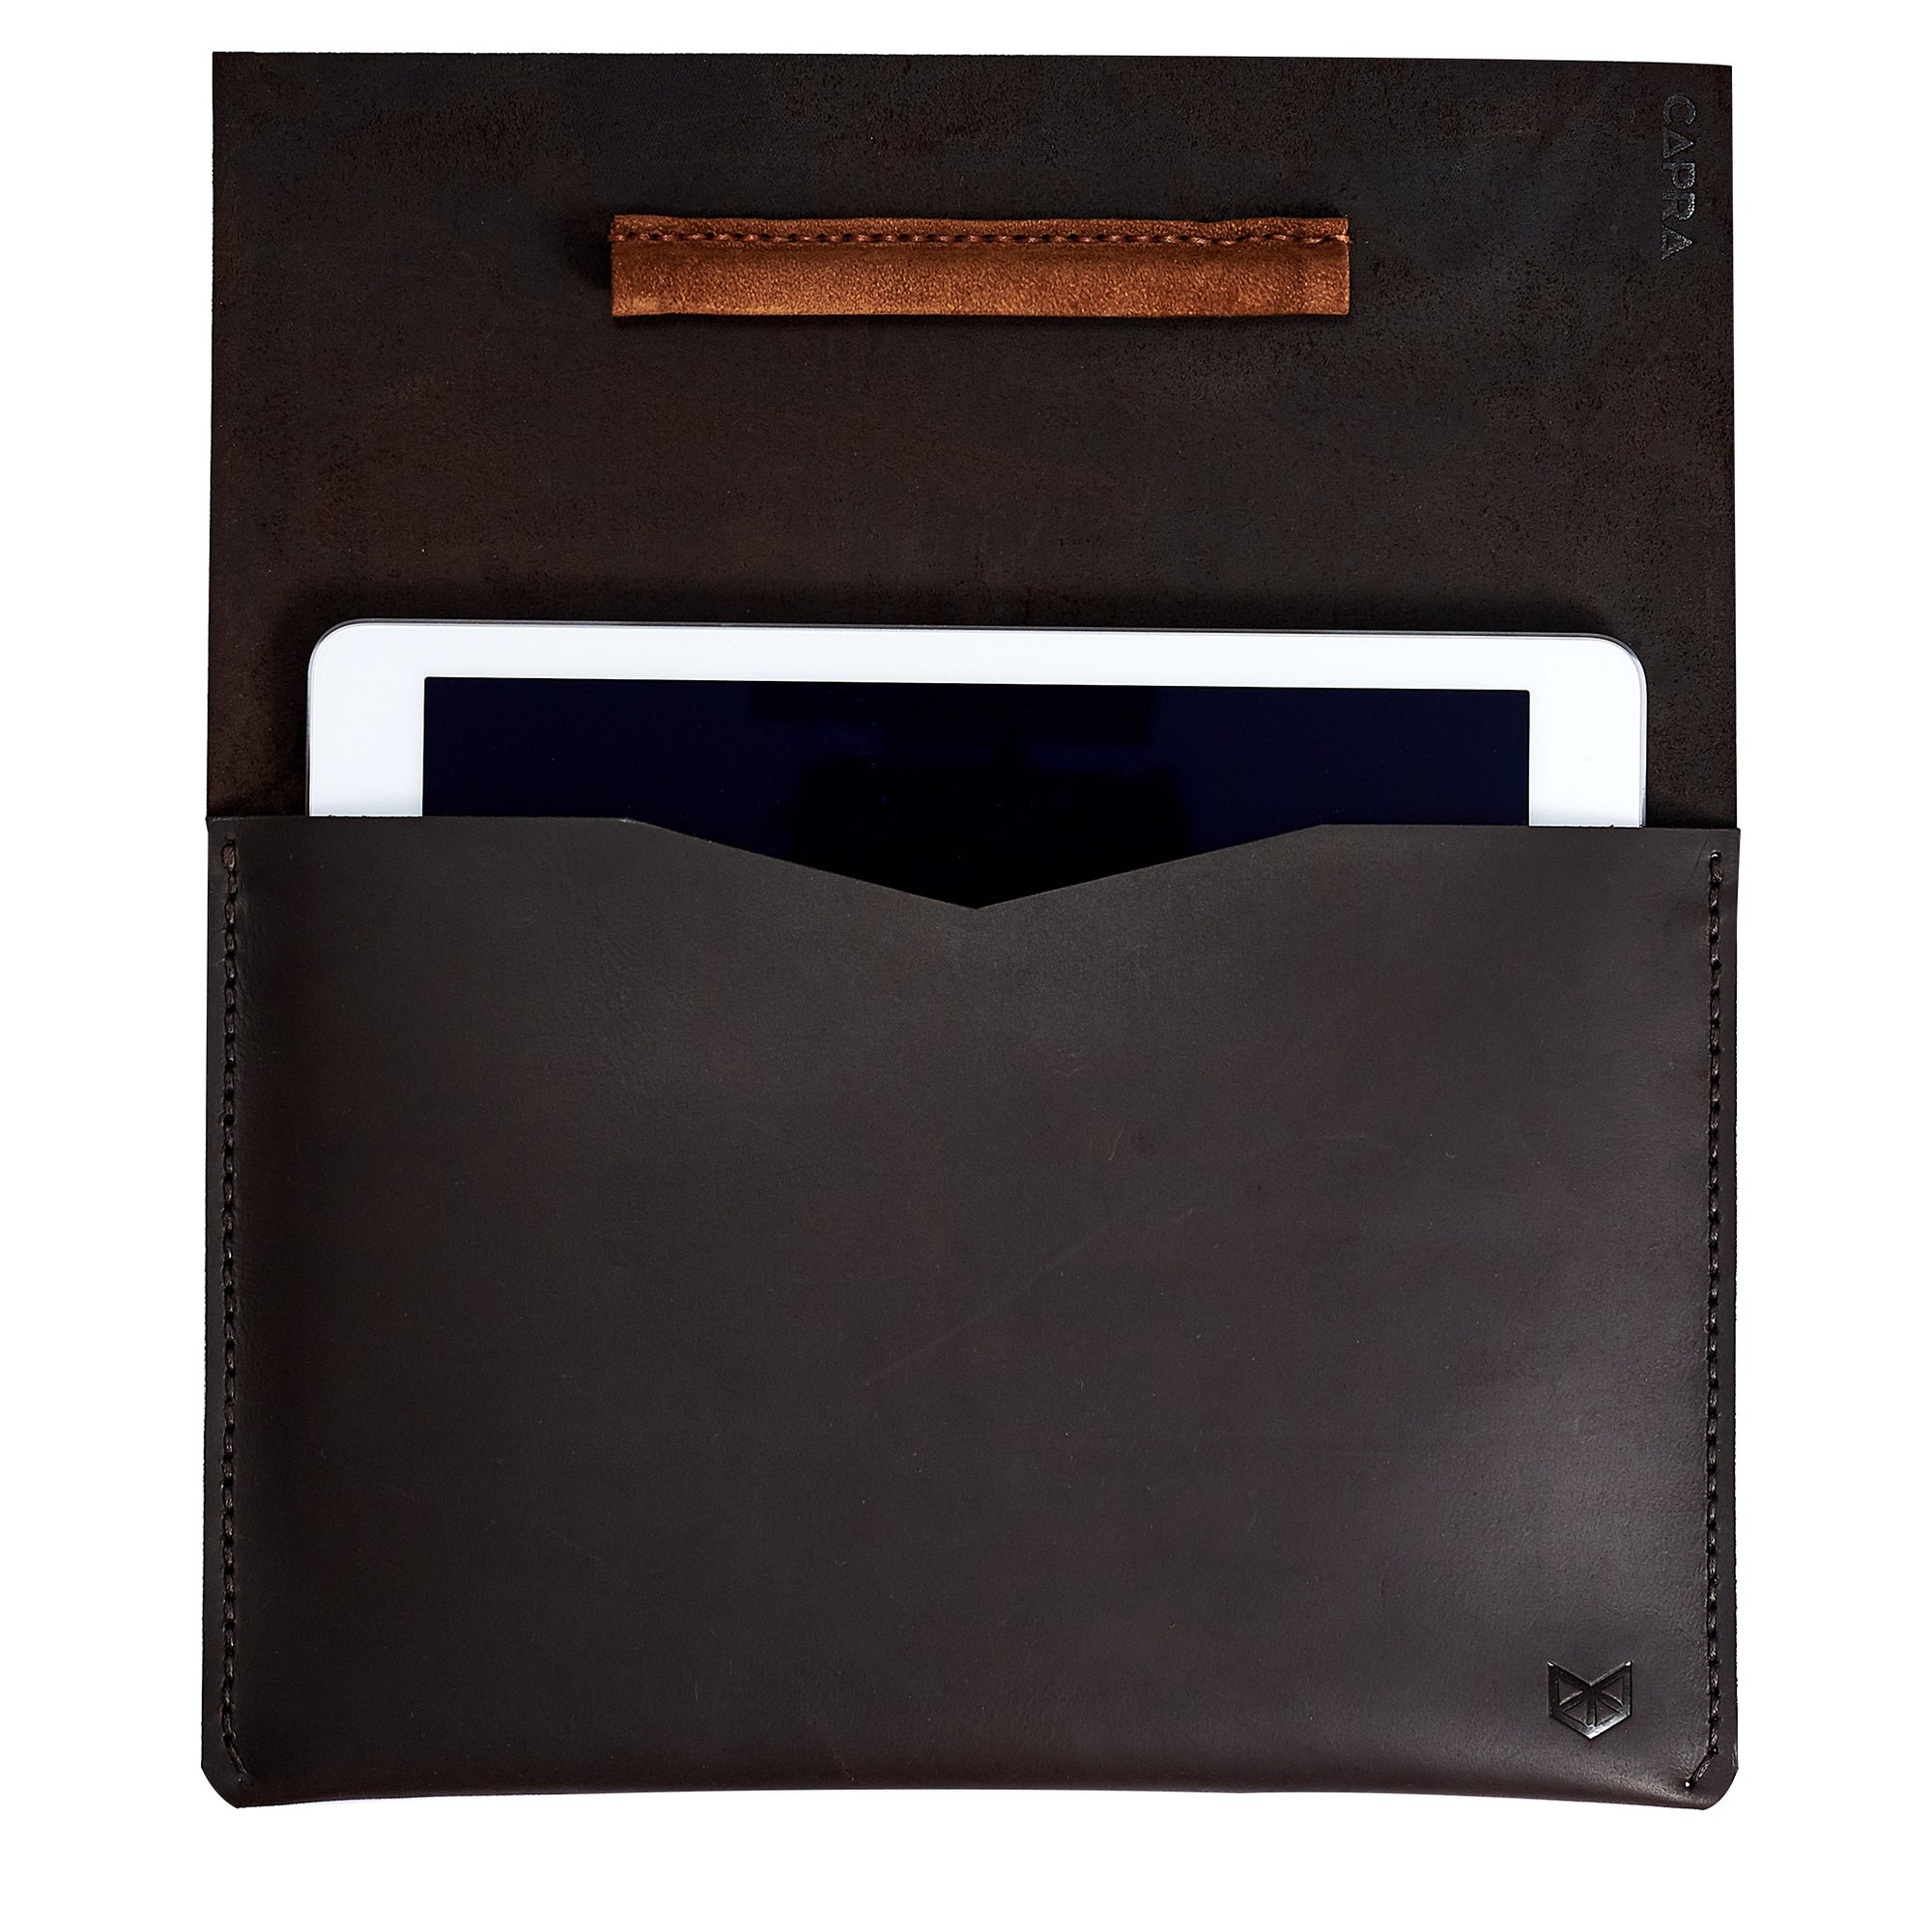 Open. Marron iPad pro leather sleeve. Mens leather iPad case for gift